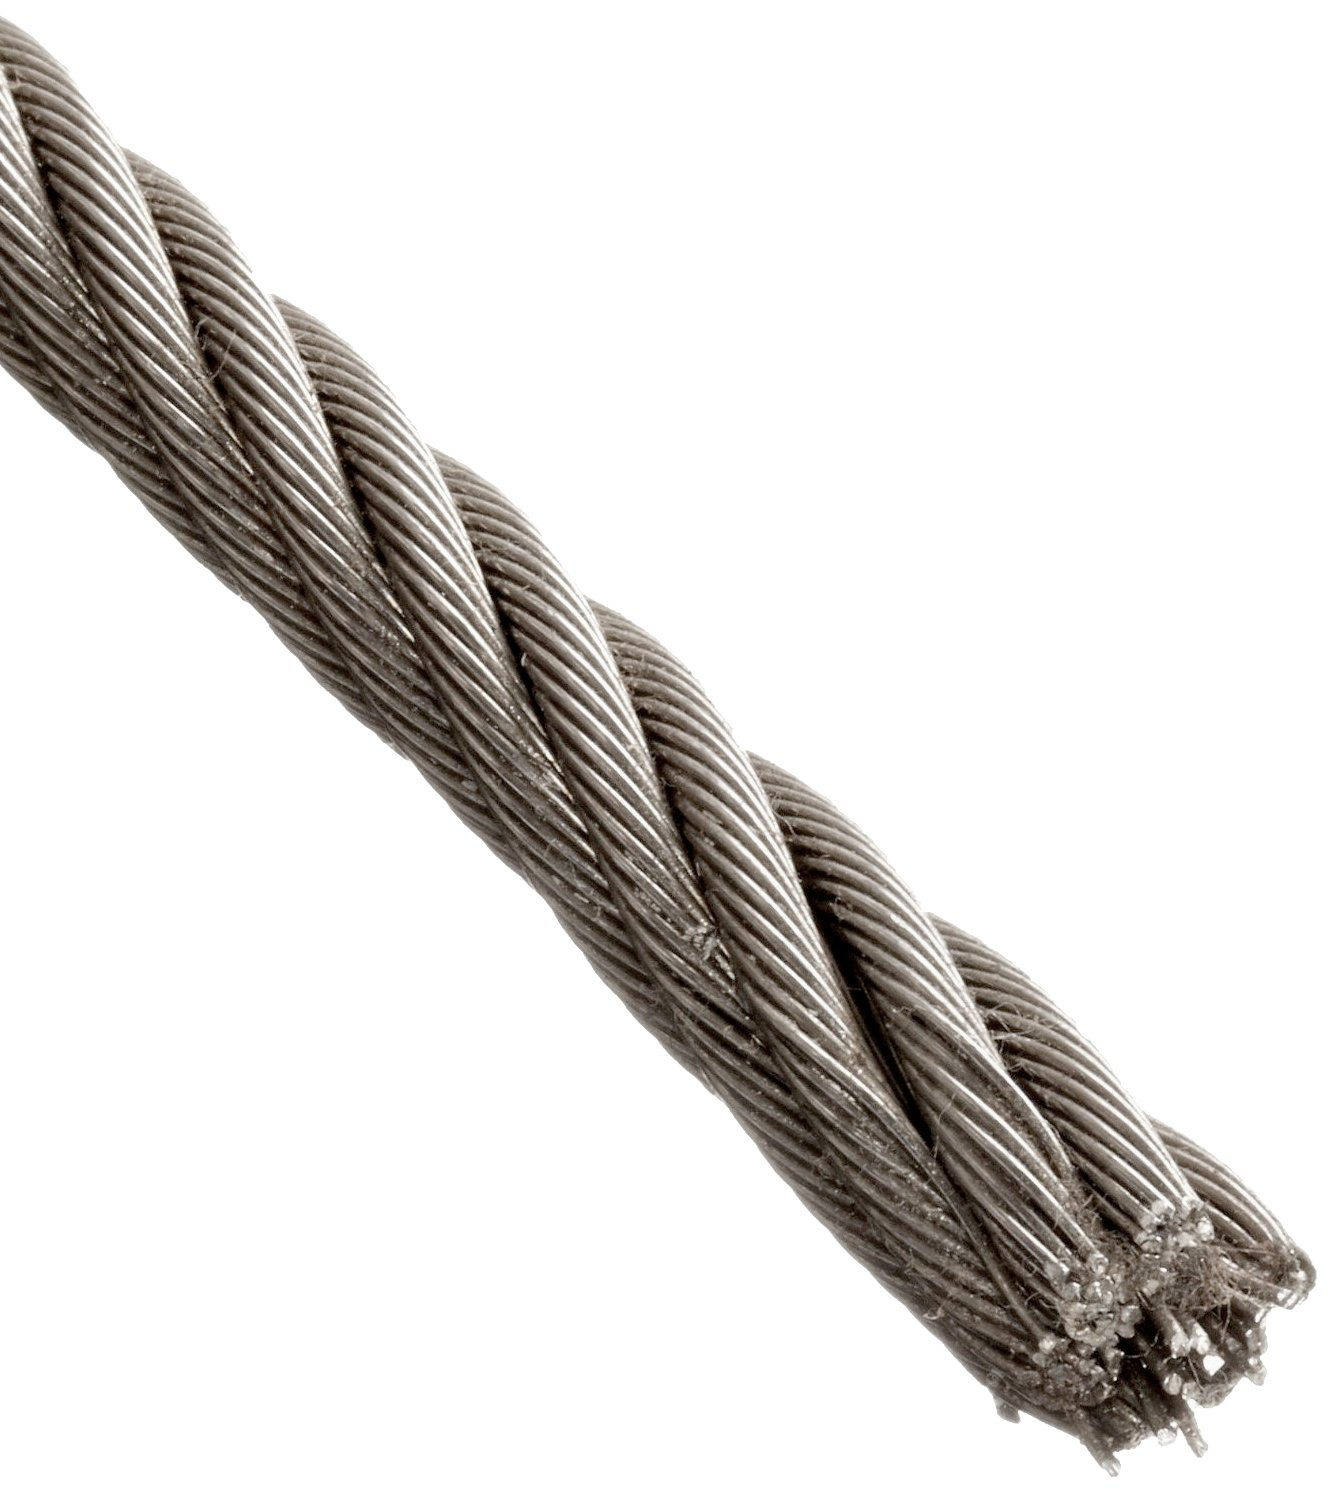 Stainless Steel Wire Rope - 3mm | Stainless Steel Wire Rope | More ...